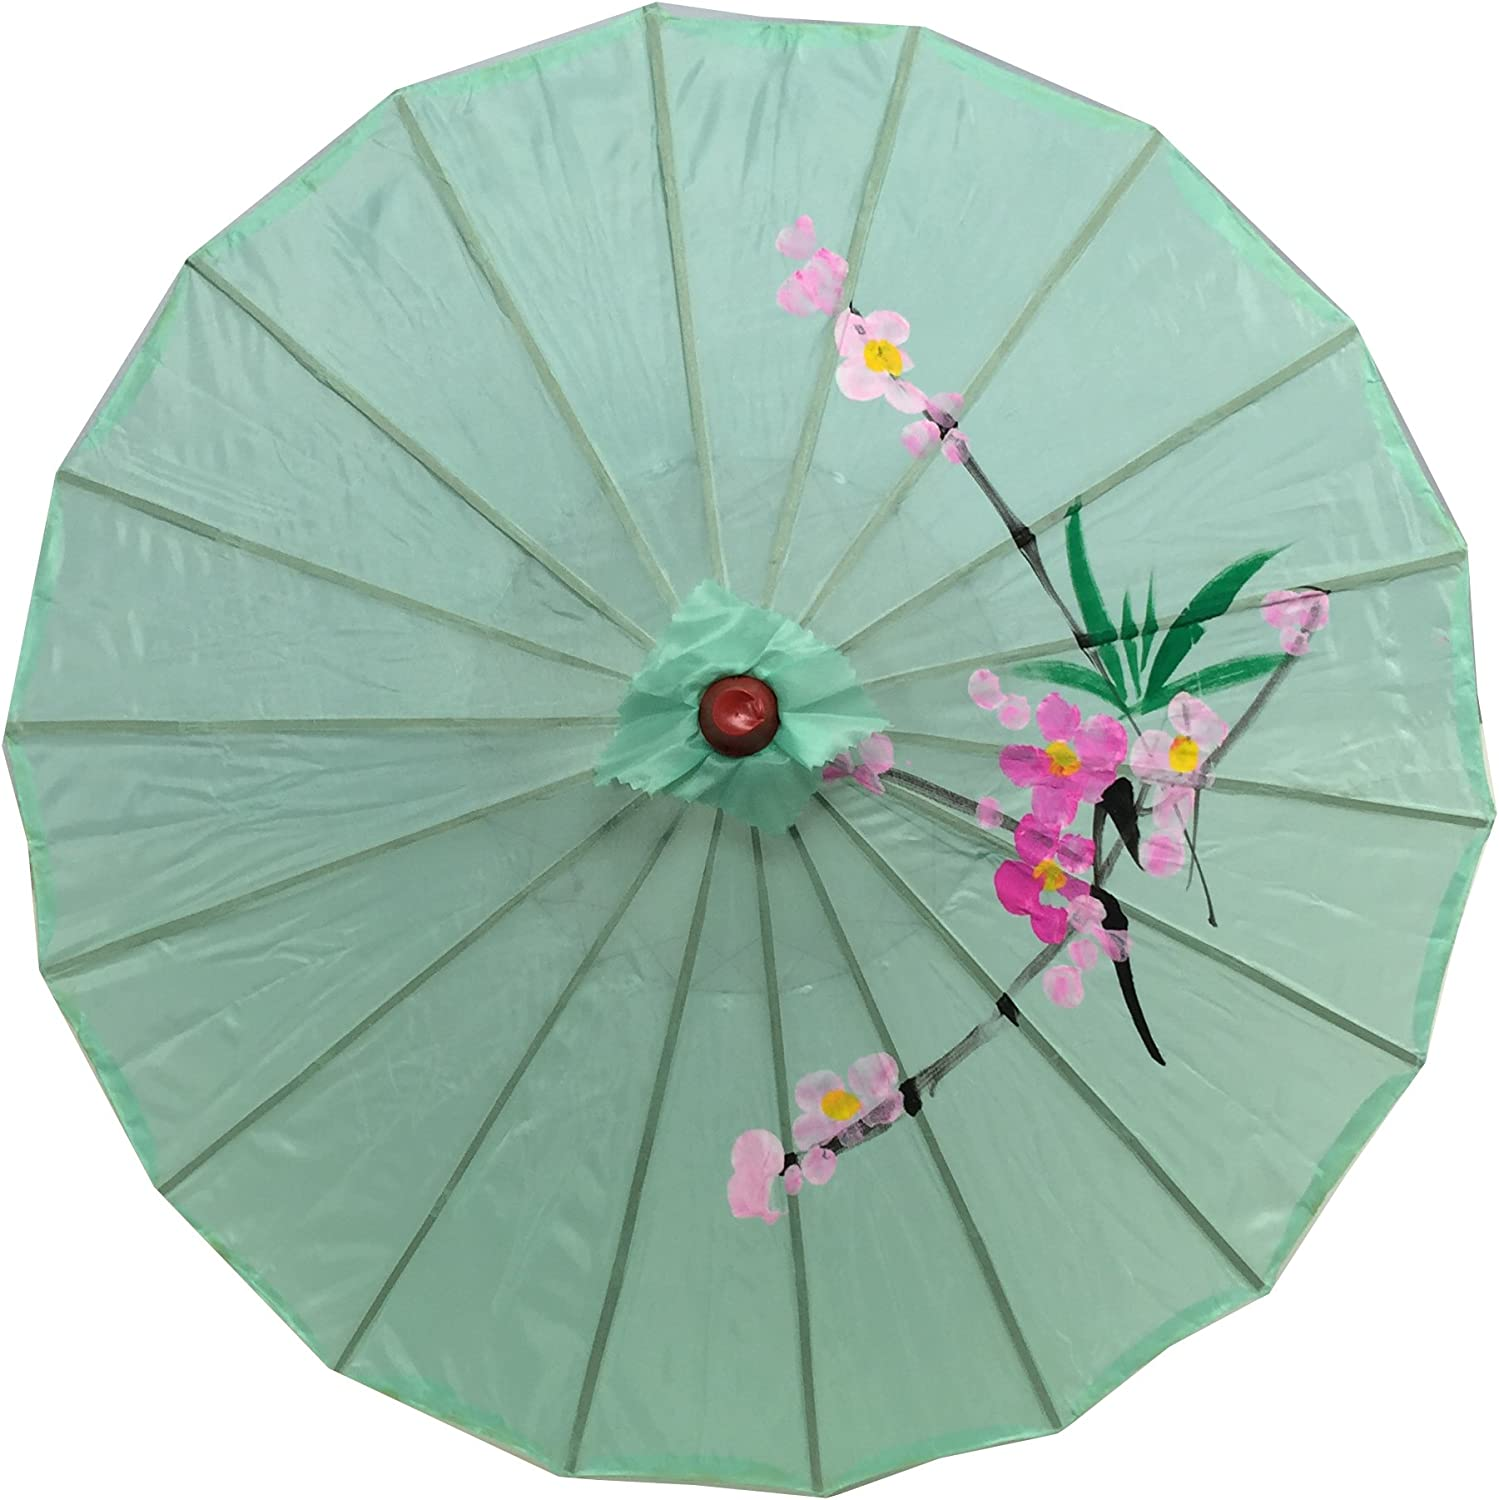 JapanBargain 2195, Asian Parasol Chinese Japanese Nylon Umbrella Parasol for Photography Cosplay Costumes Wedding Party Home Decoration Adult Size, 32 inch, Green